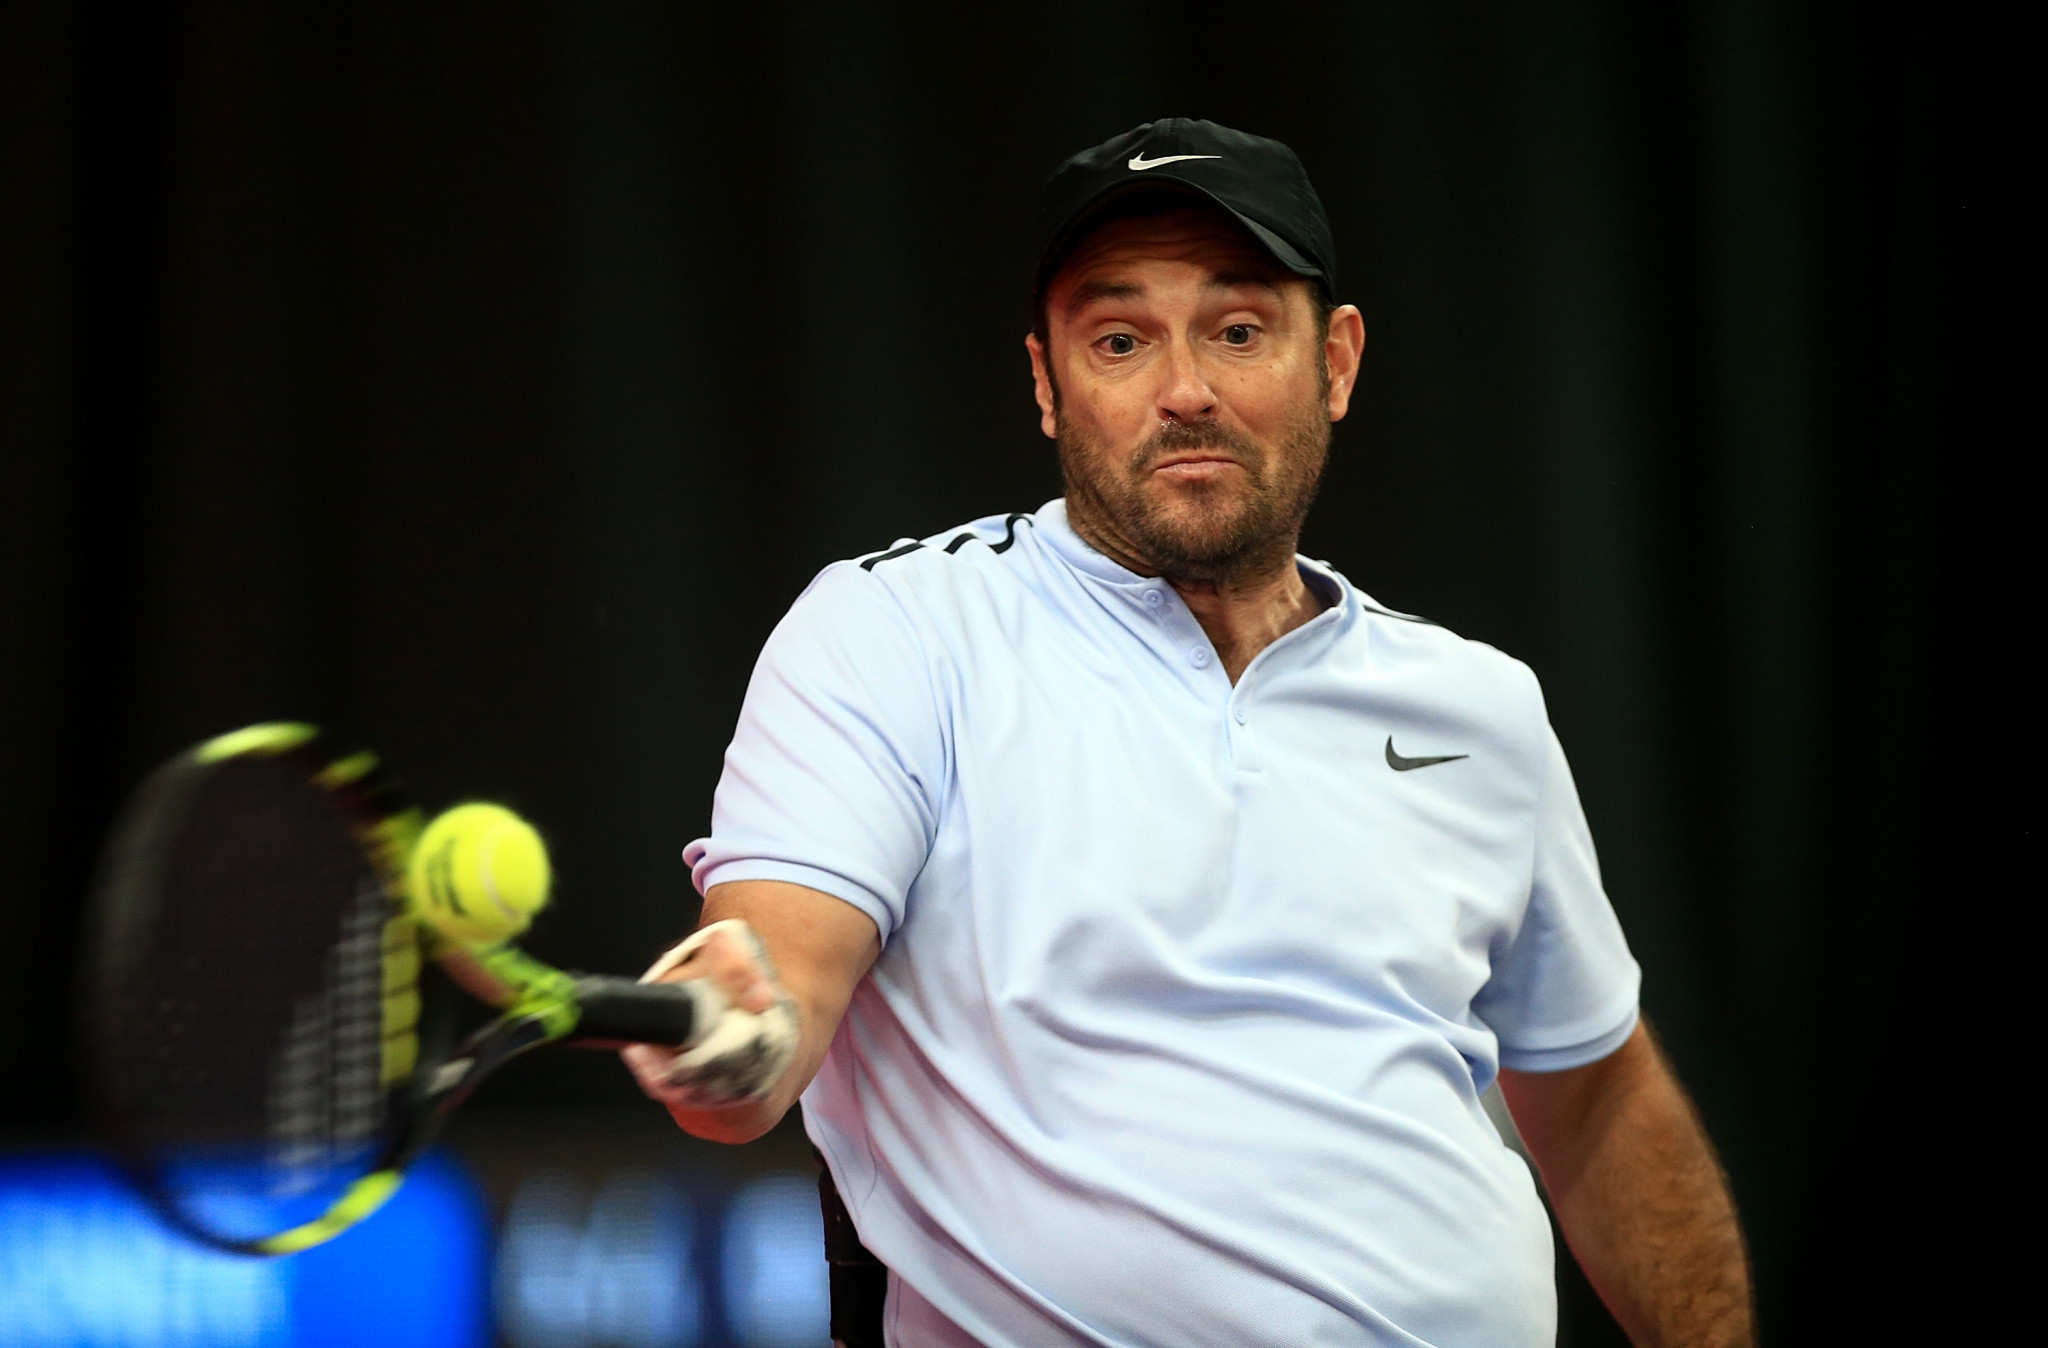 David Wagner has reached the quad singles semi-finals as he looks to defend his title ©Getty Images